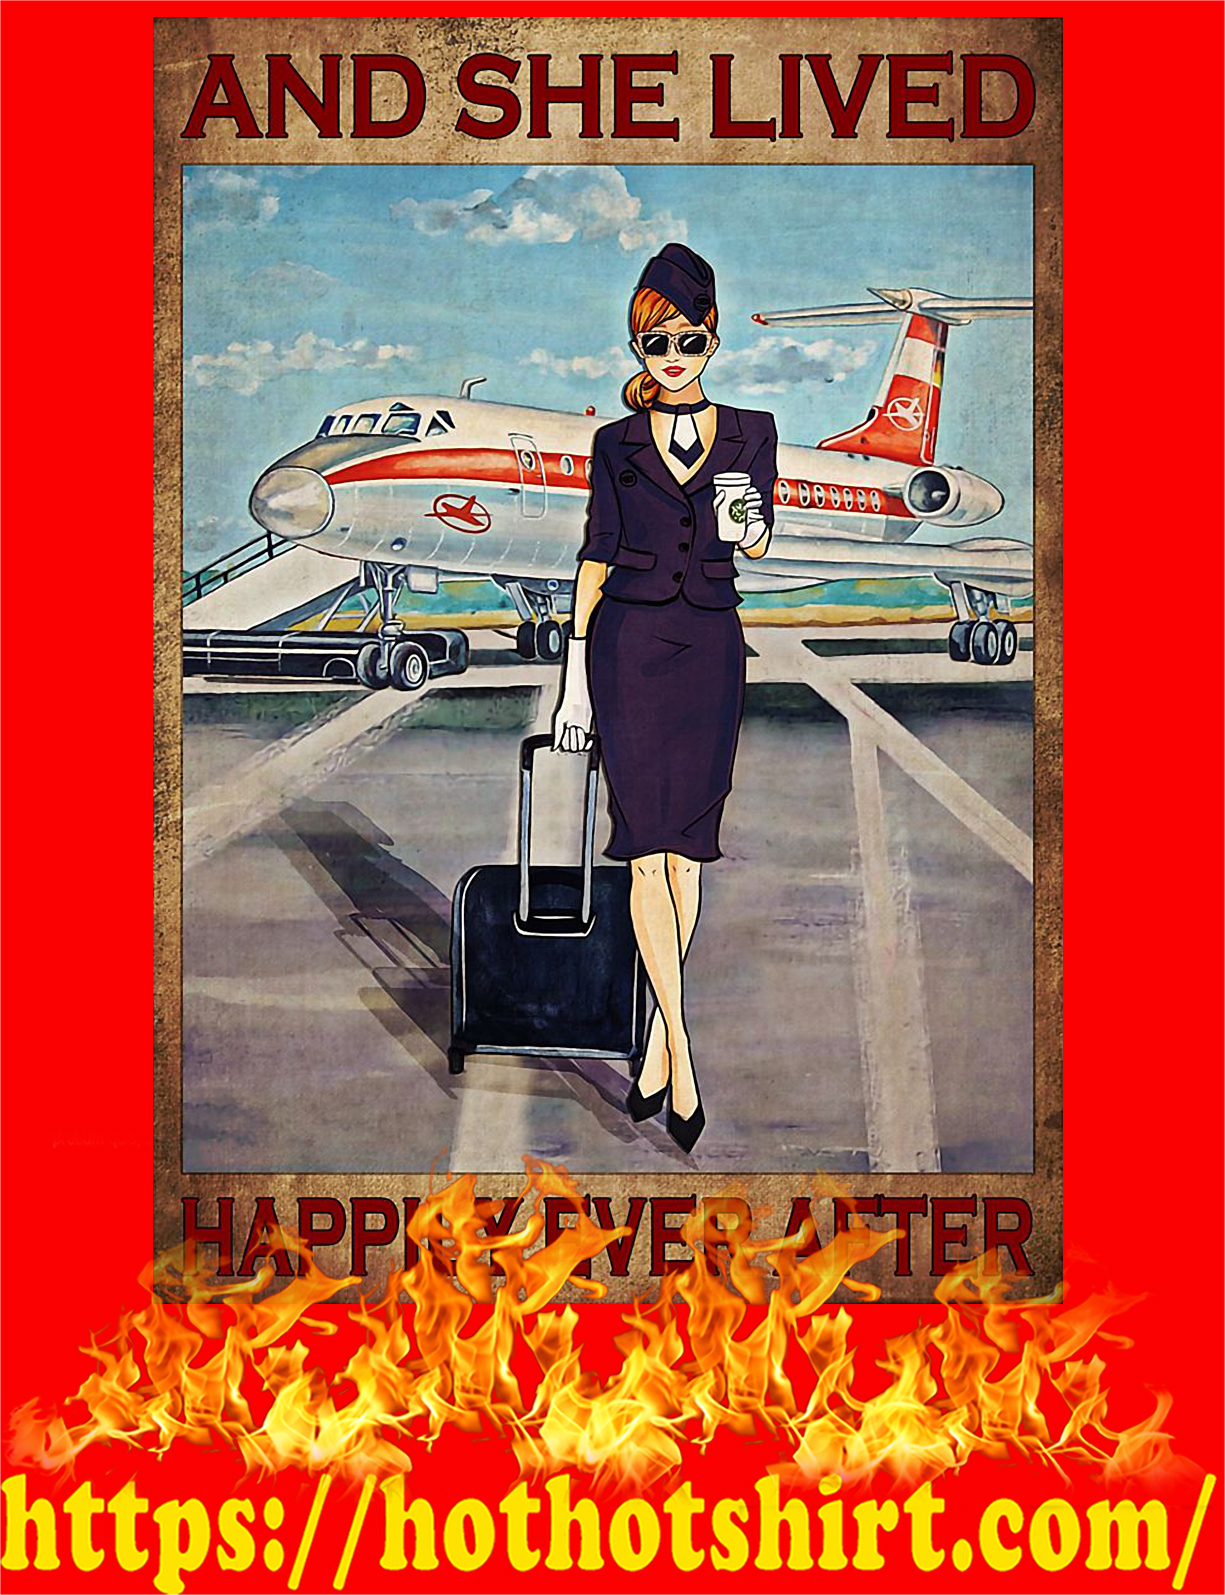 Flight Attendant And She Lived Happily Ever After Poster - style 3